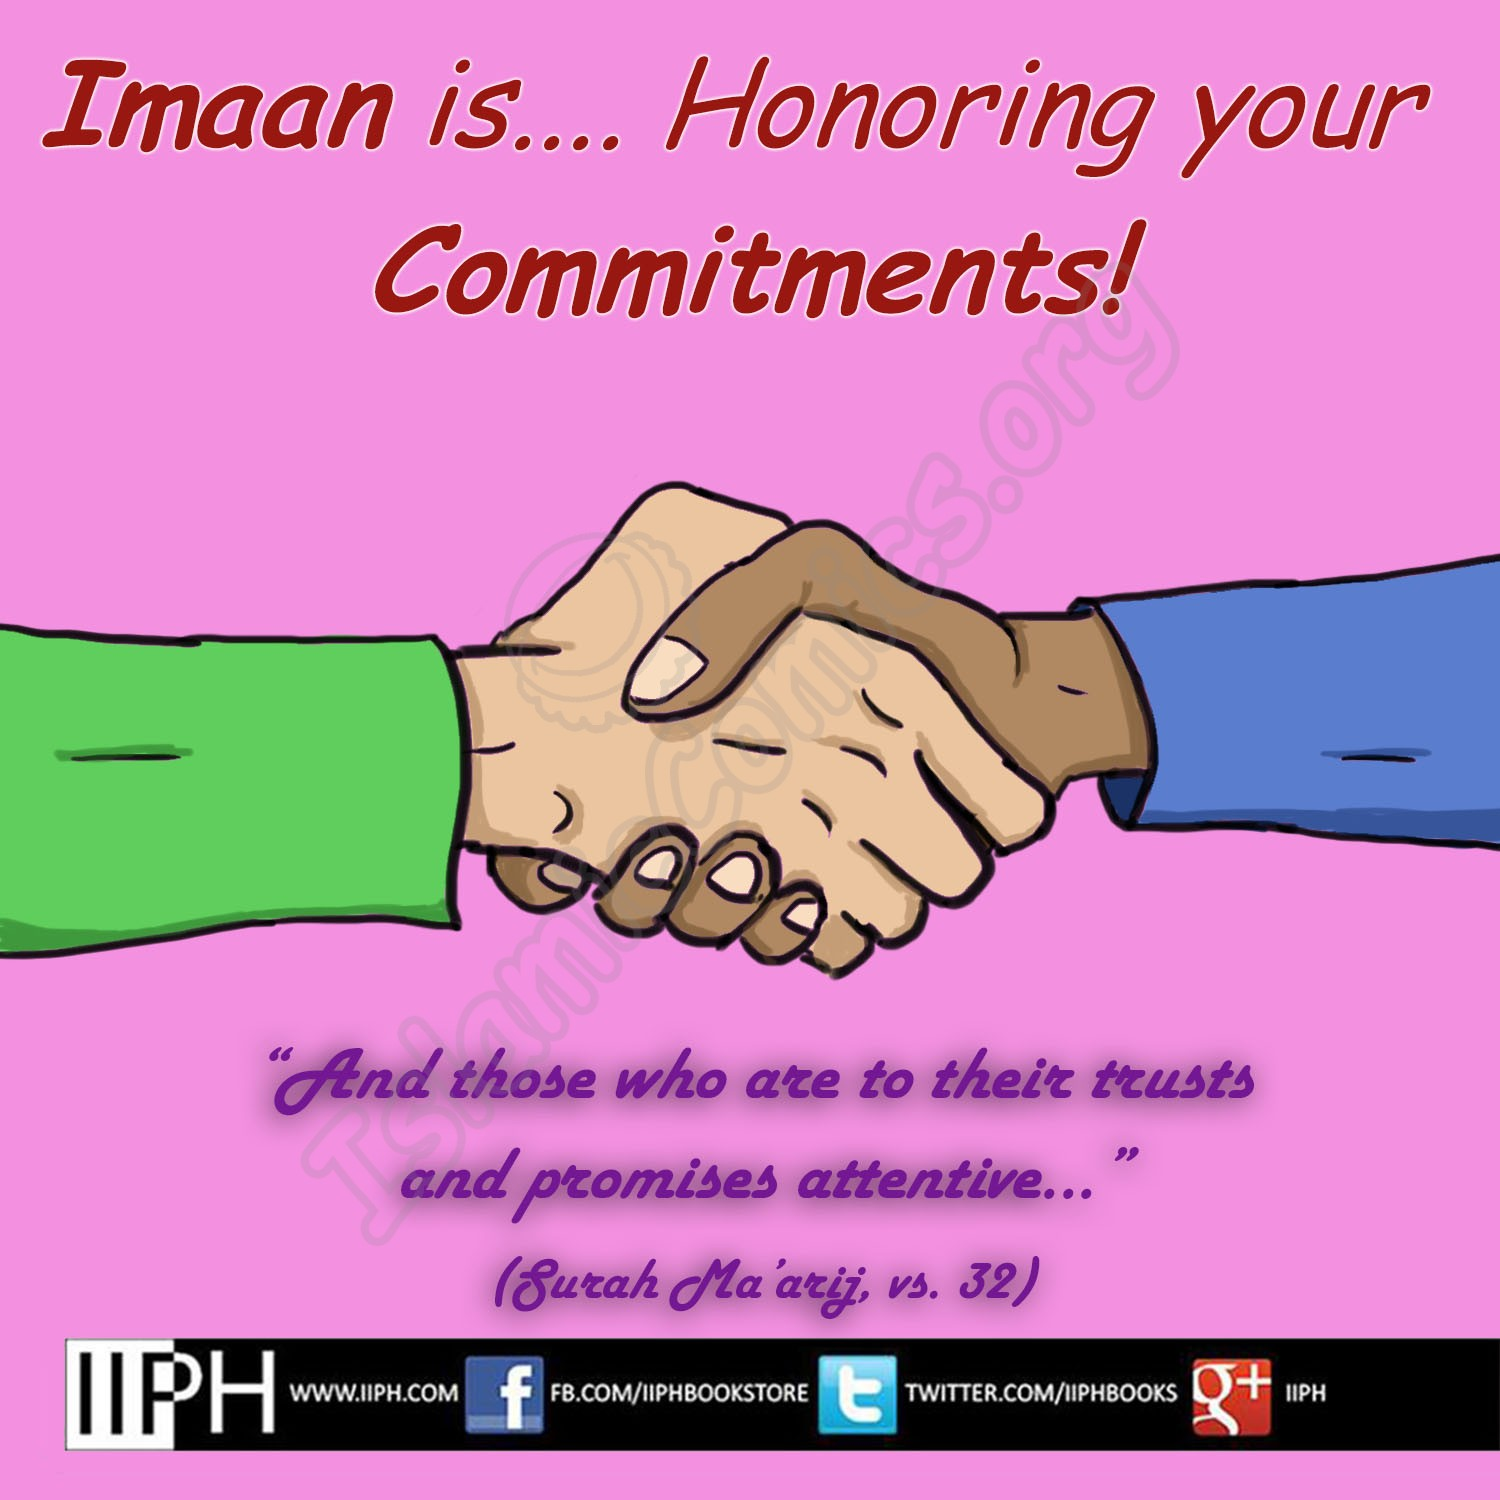 Imaan is Honoring Commitments - Islamic Illustrations (Islamic Comics)